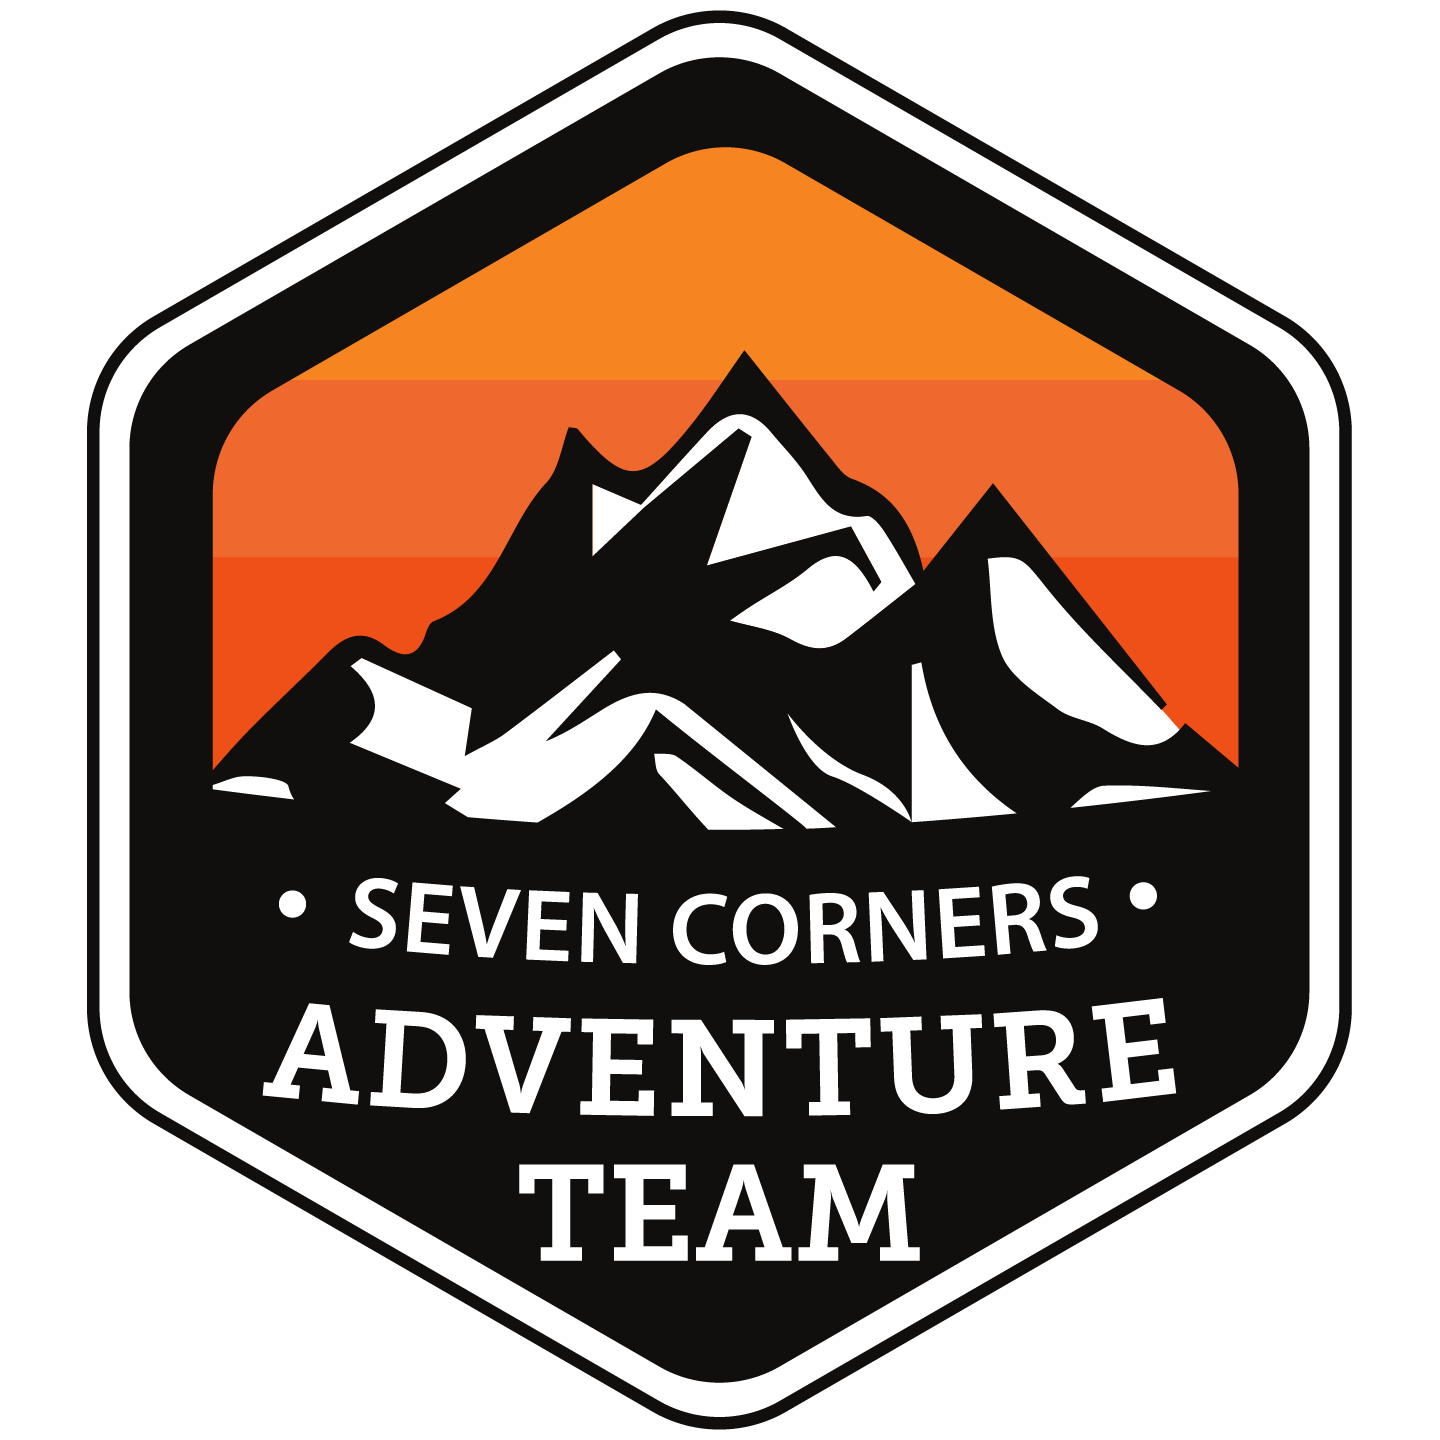 Seven Corners Adventure Team logo